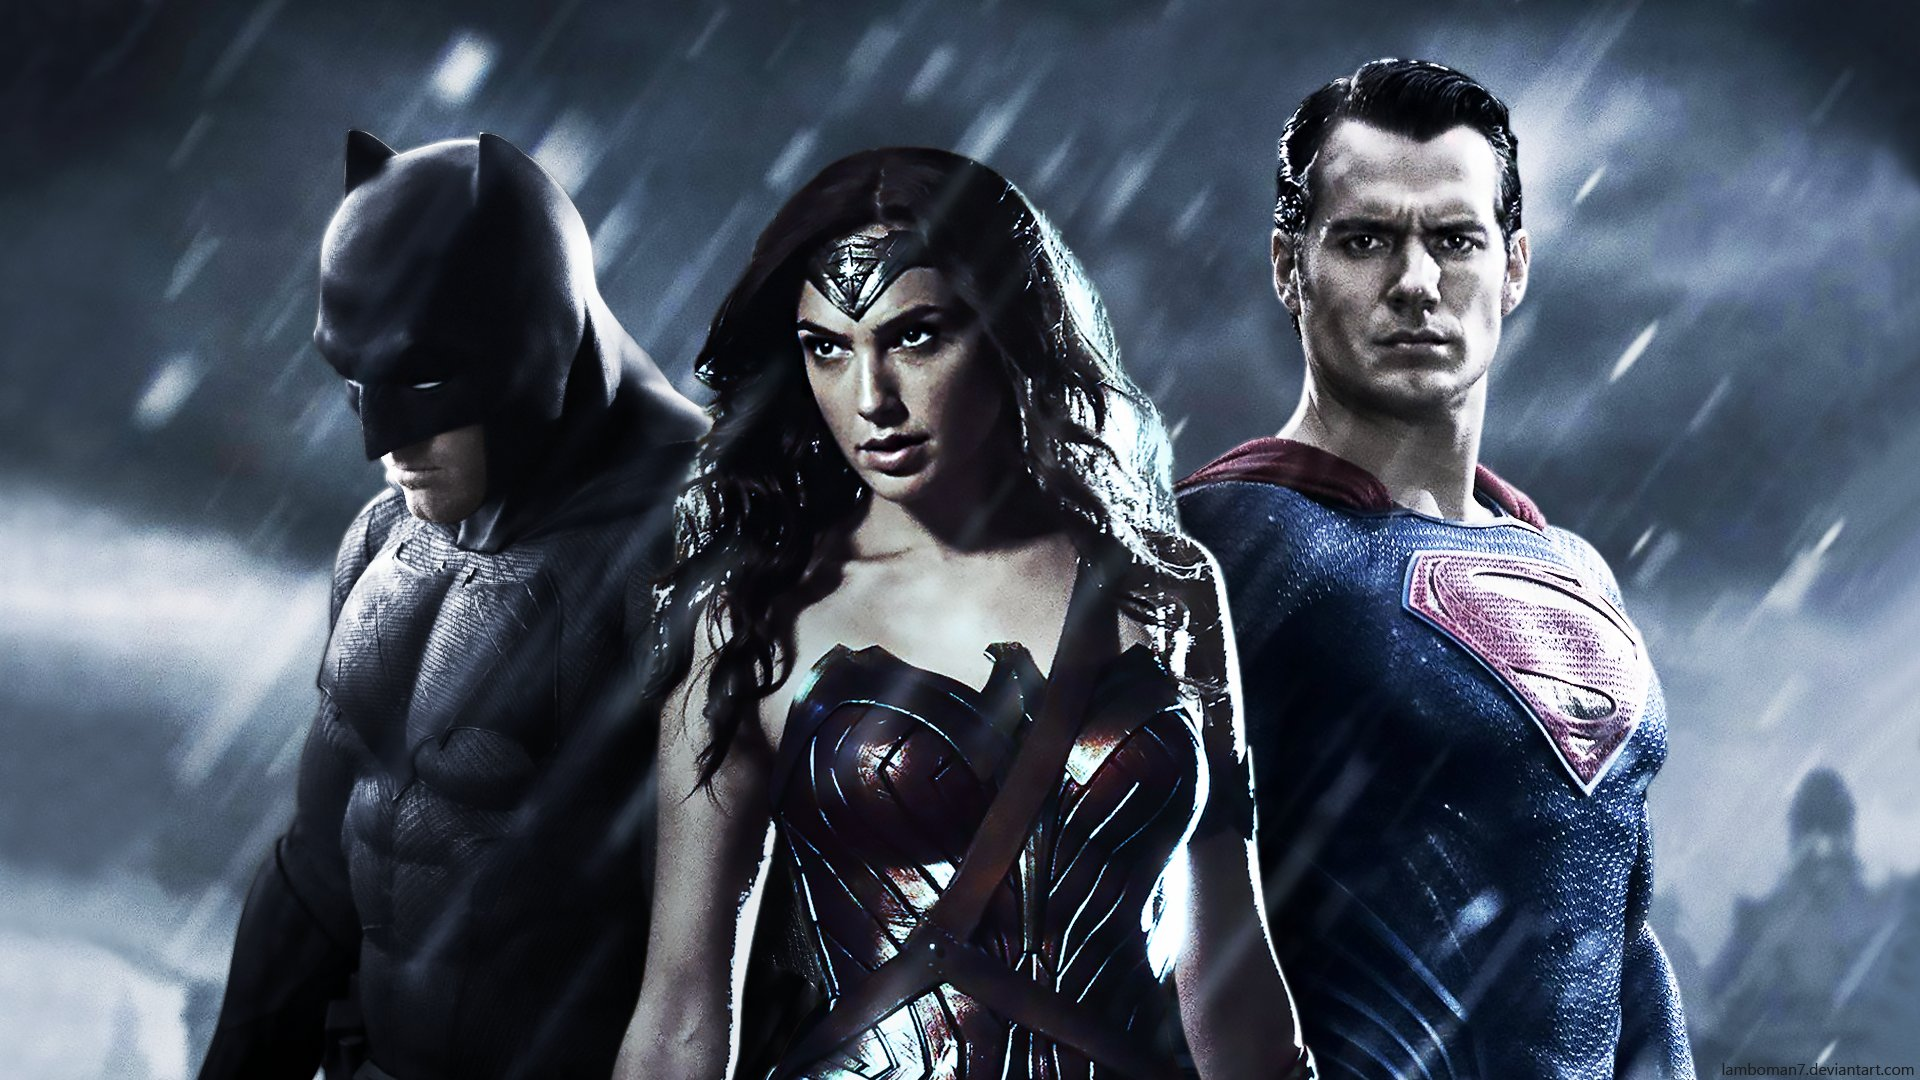 BATMAN v SUPERMAN adventure action batman superman dawn justice wonder 1920x1080